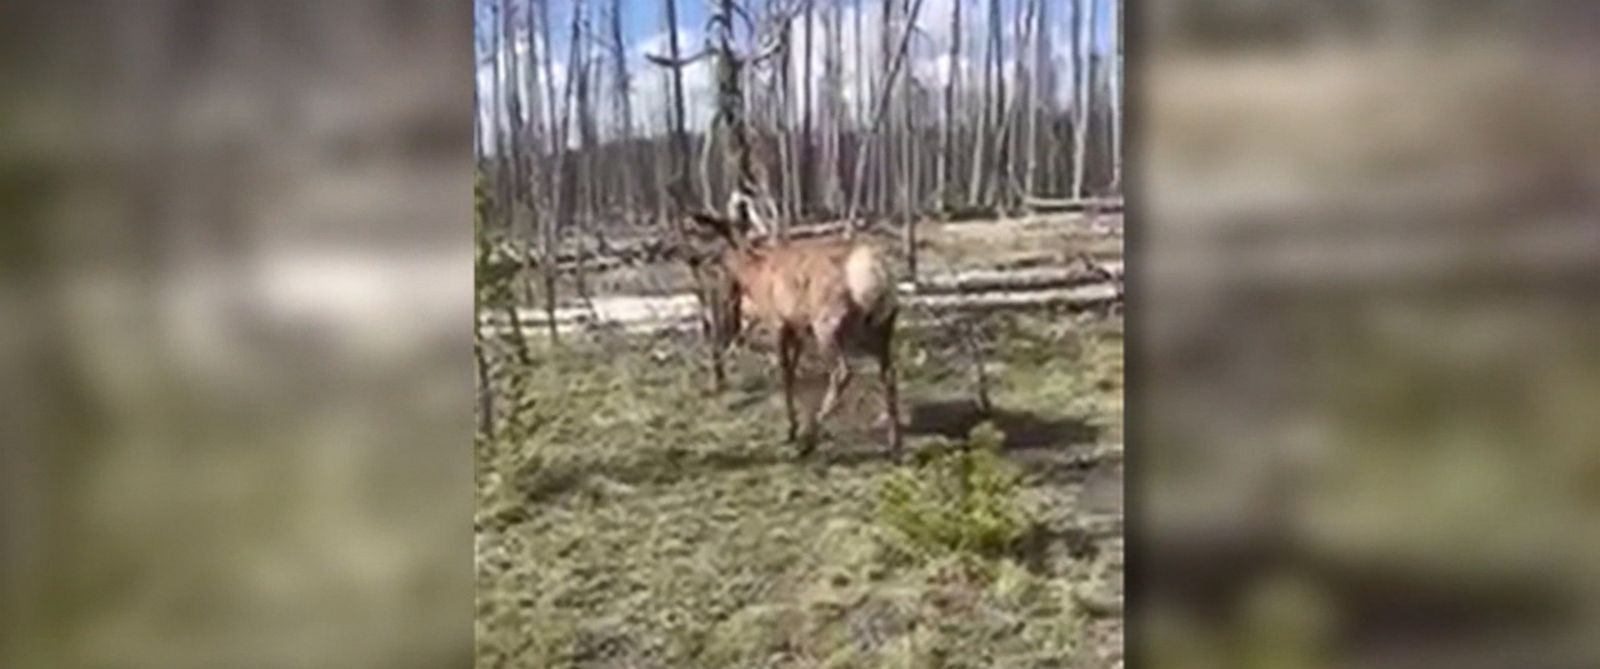 PHOTO: Woman charged by an elk at Yellowstone National Park after inching close to take a good photo of it.